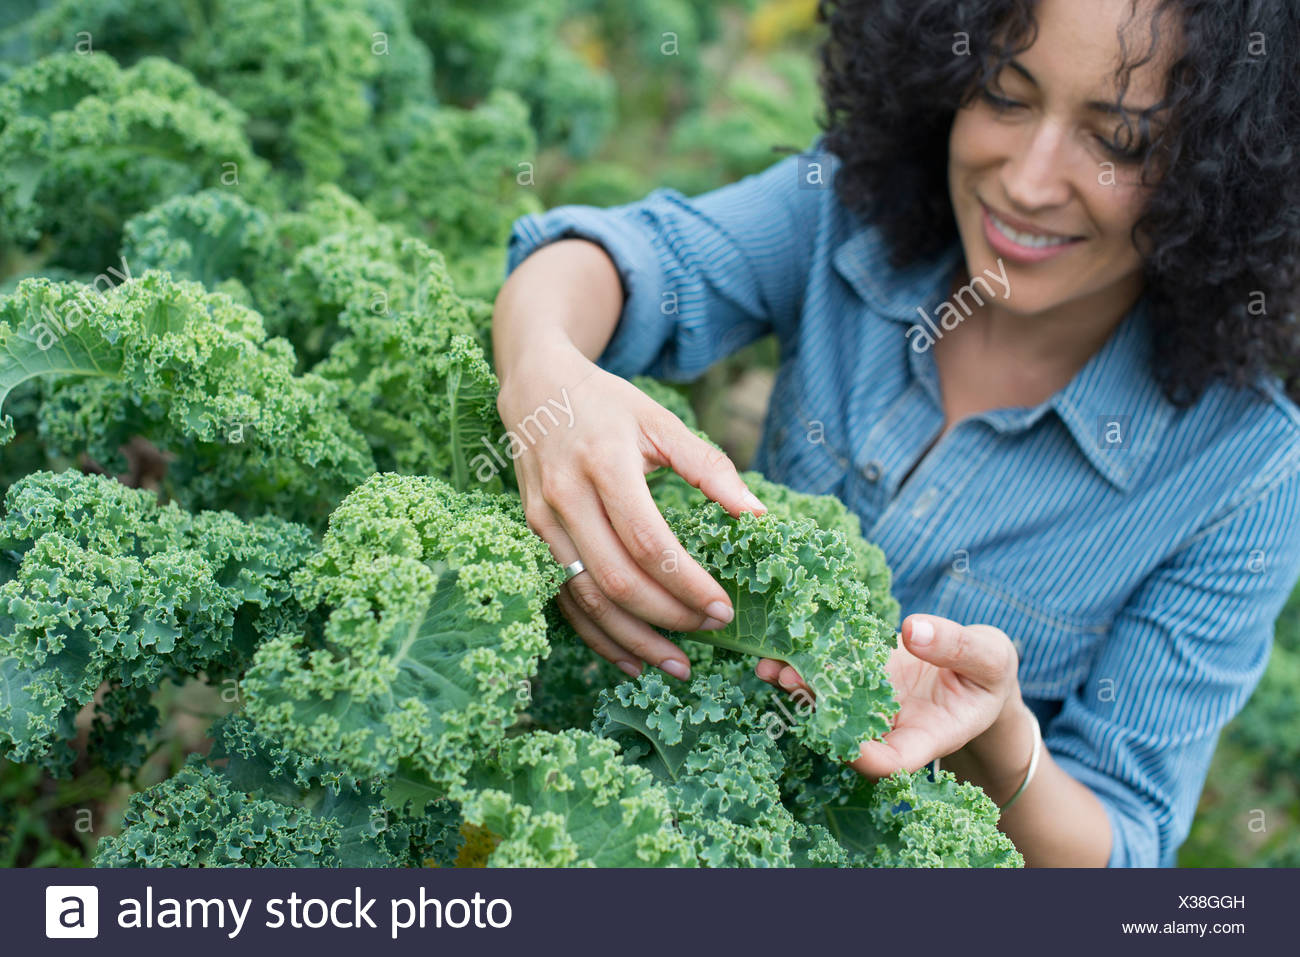 An organic vegetable farm. A woman working among the crisp curly kale crop. - Stock Image